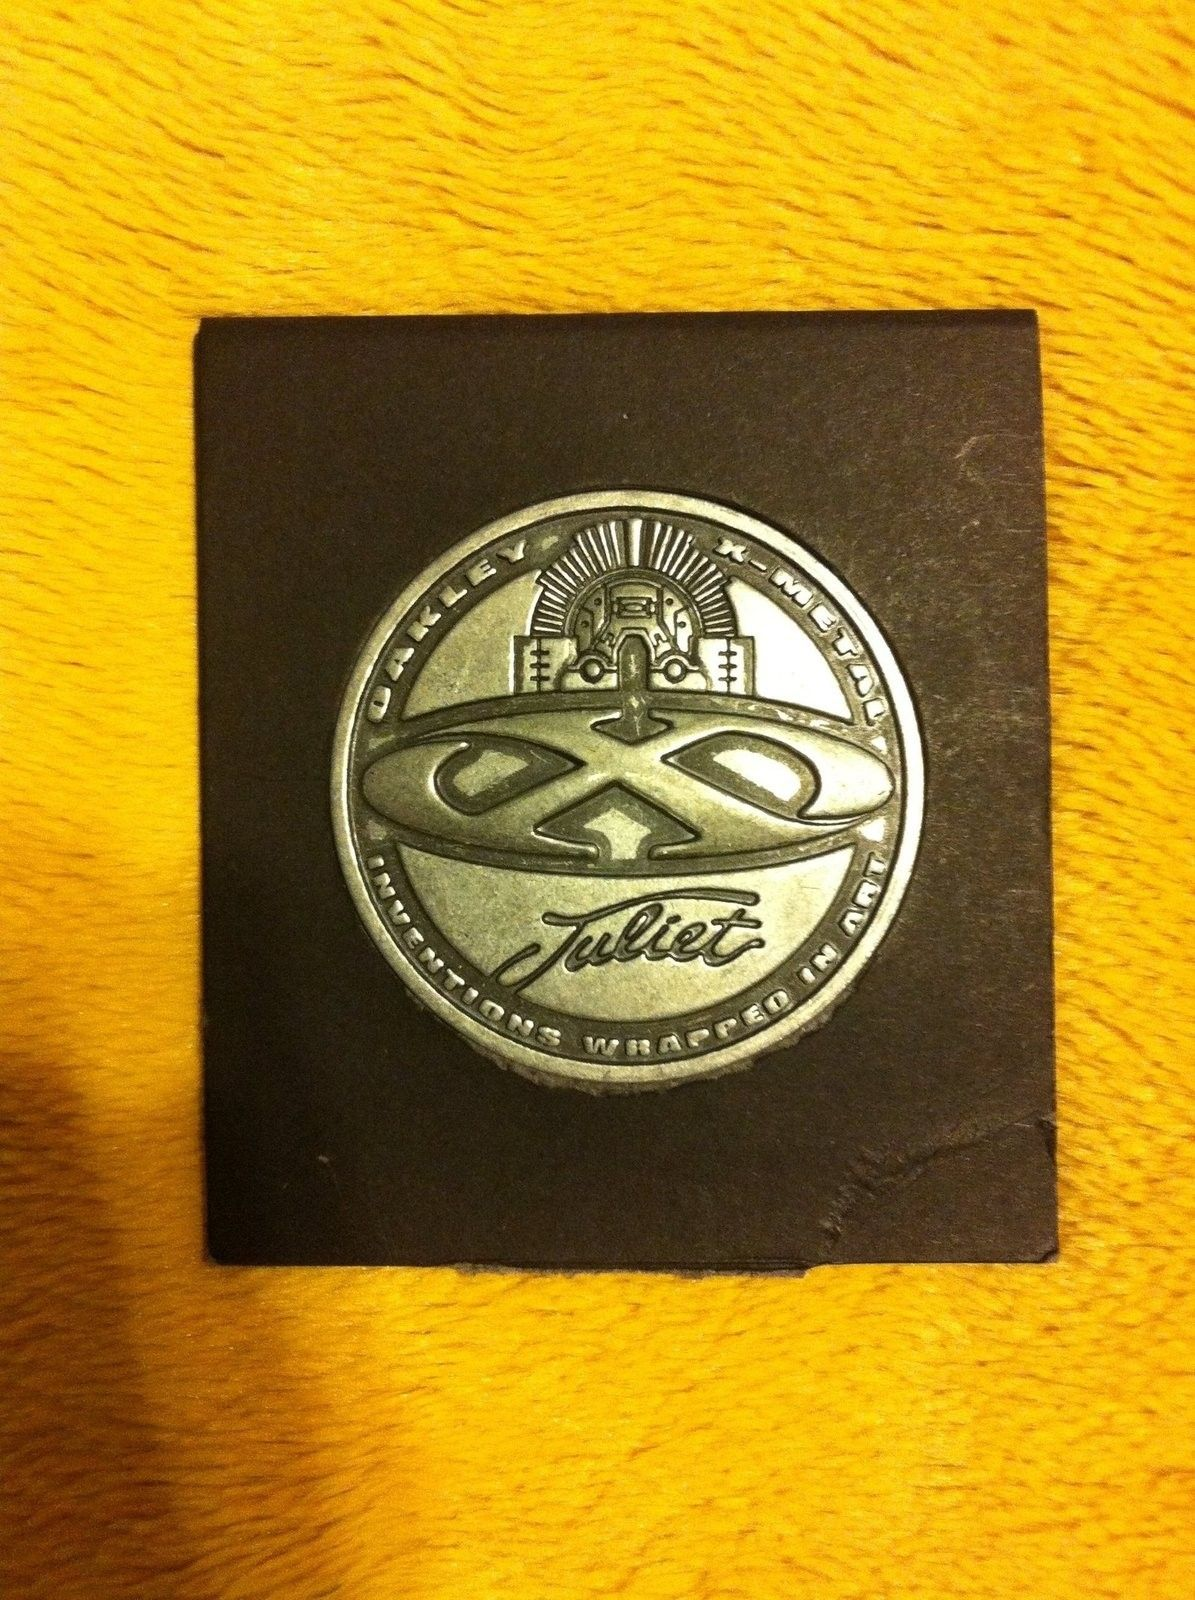 Juliet X-Metal Coin - image.jpg